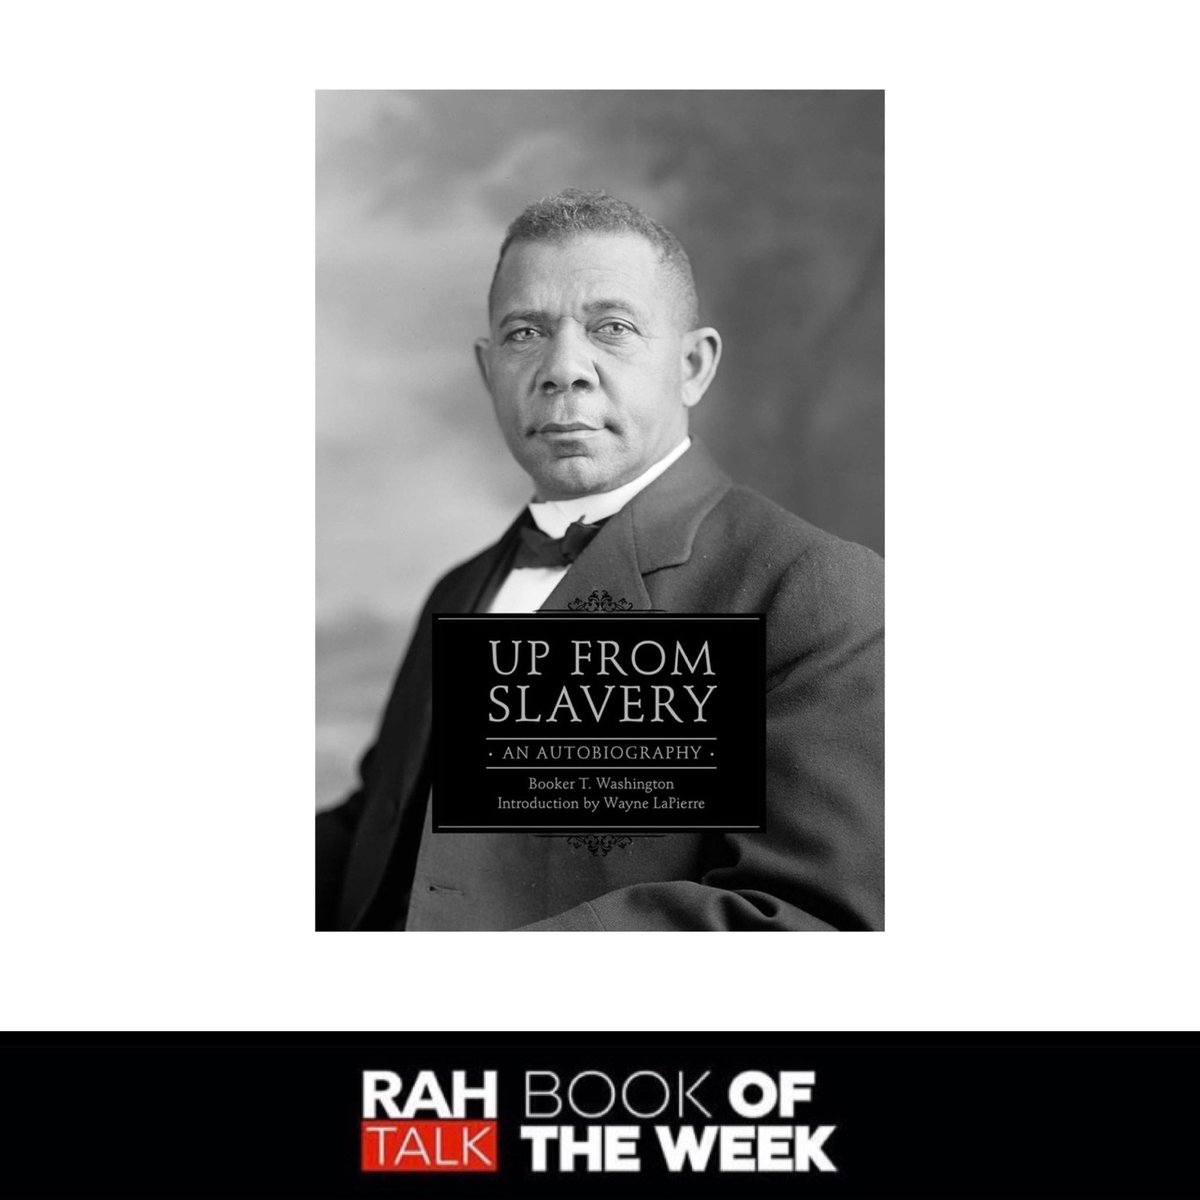 """#RahTalk Book of the Week: Booker T Washington's Autobiography - """"Up From Slavery""""  If you've read the book, comment your thoughts on it below. 📚  #Black #BlackAuthors #BlackReads #BlackBooks #KnowledgeIsPower #BarnesAndNobles #Books #BlackWriters #BookerTWashington #RahTalk"""